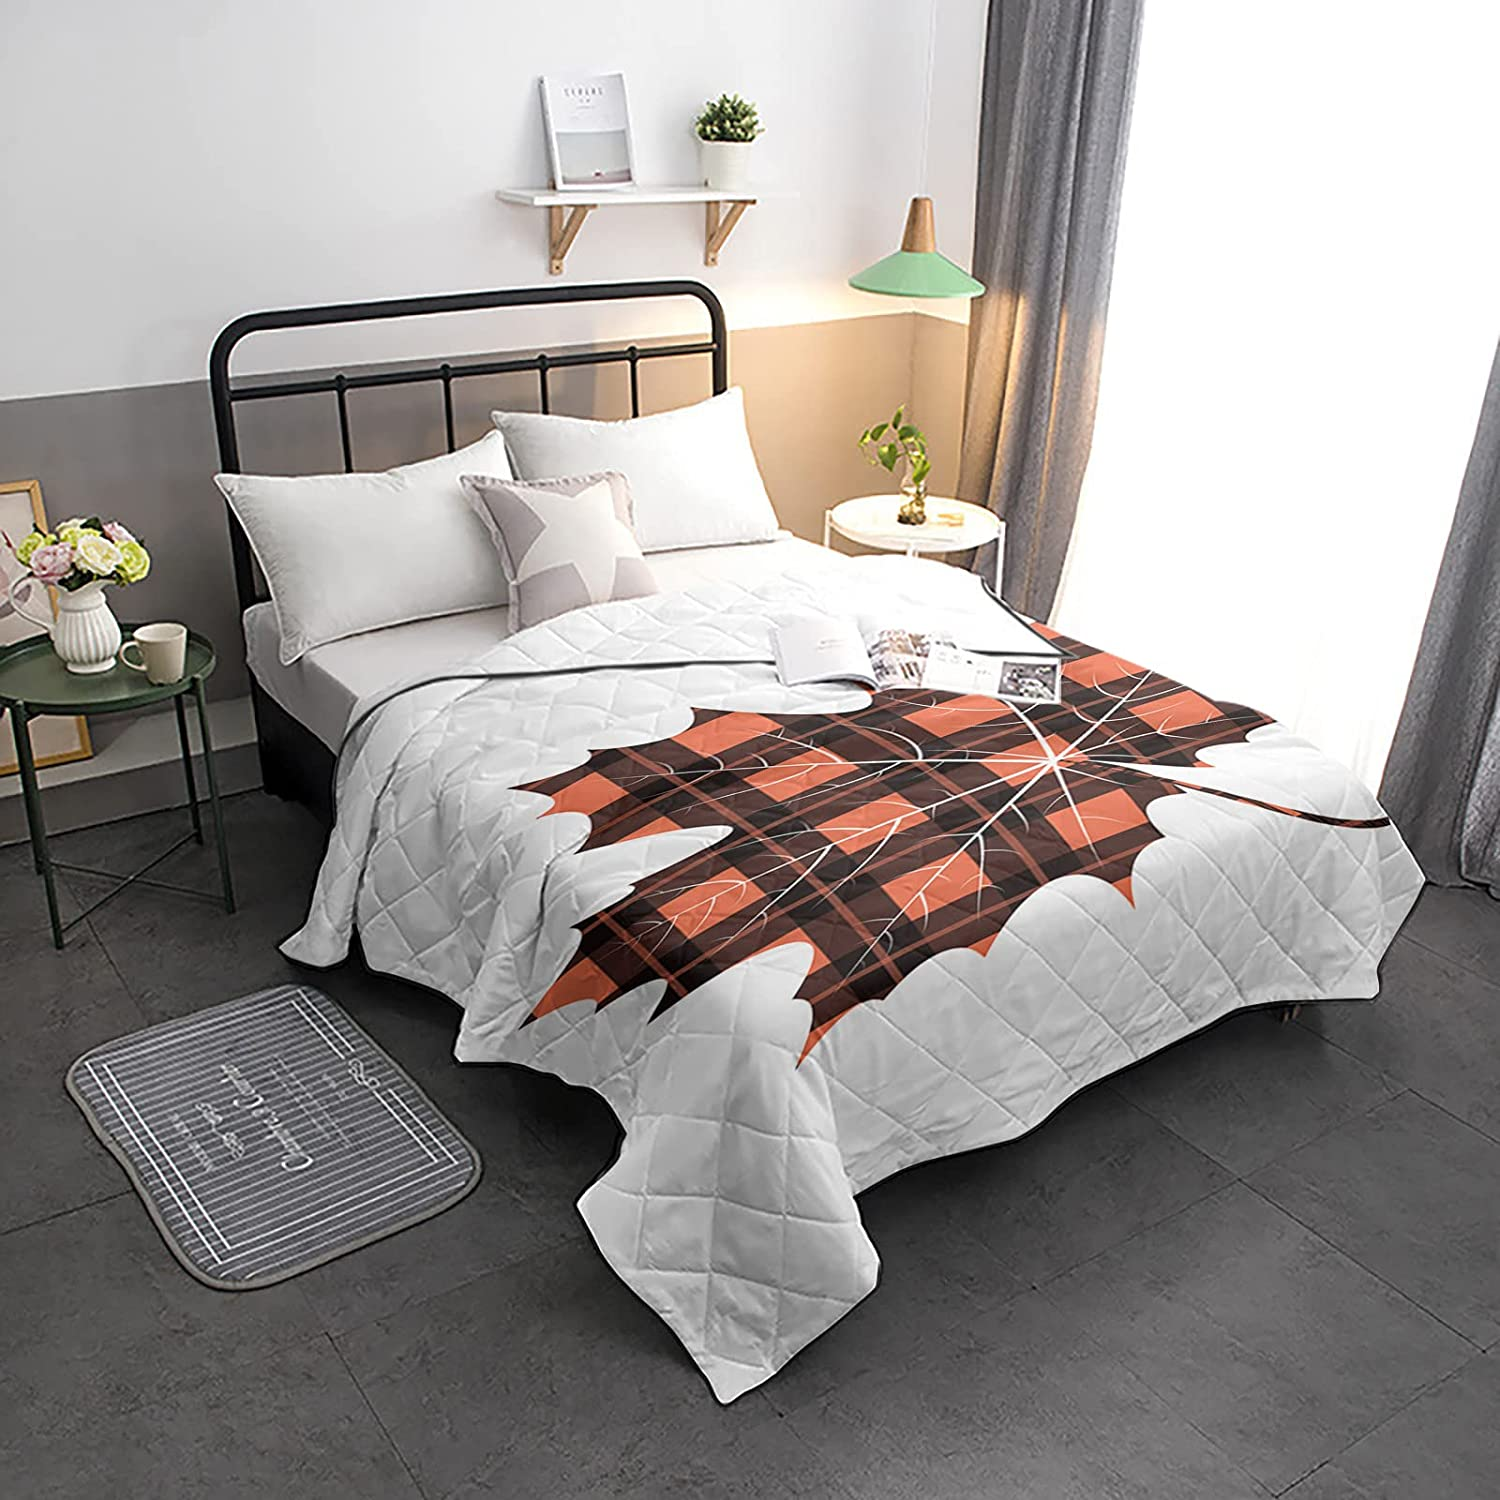 Down Alternative Comforter 70% OFF Outlet Natural Reversible Gingham Leaf Maple Special price for a limited time